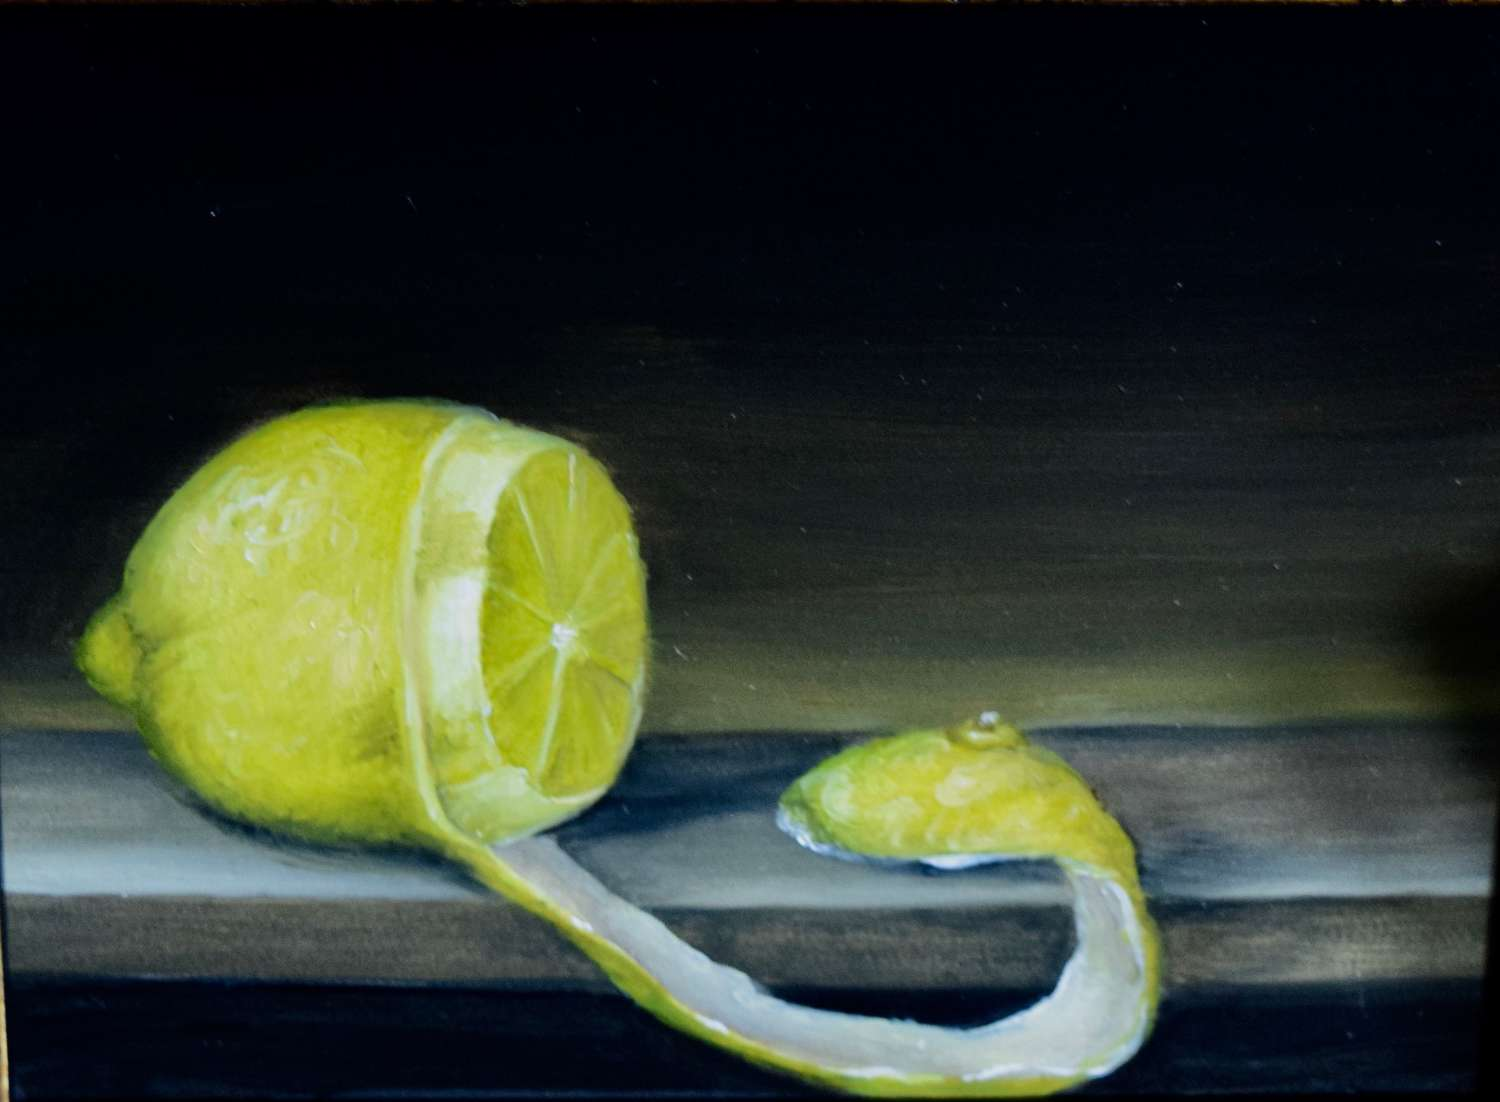 Lemon on shelf